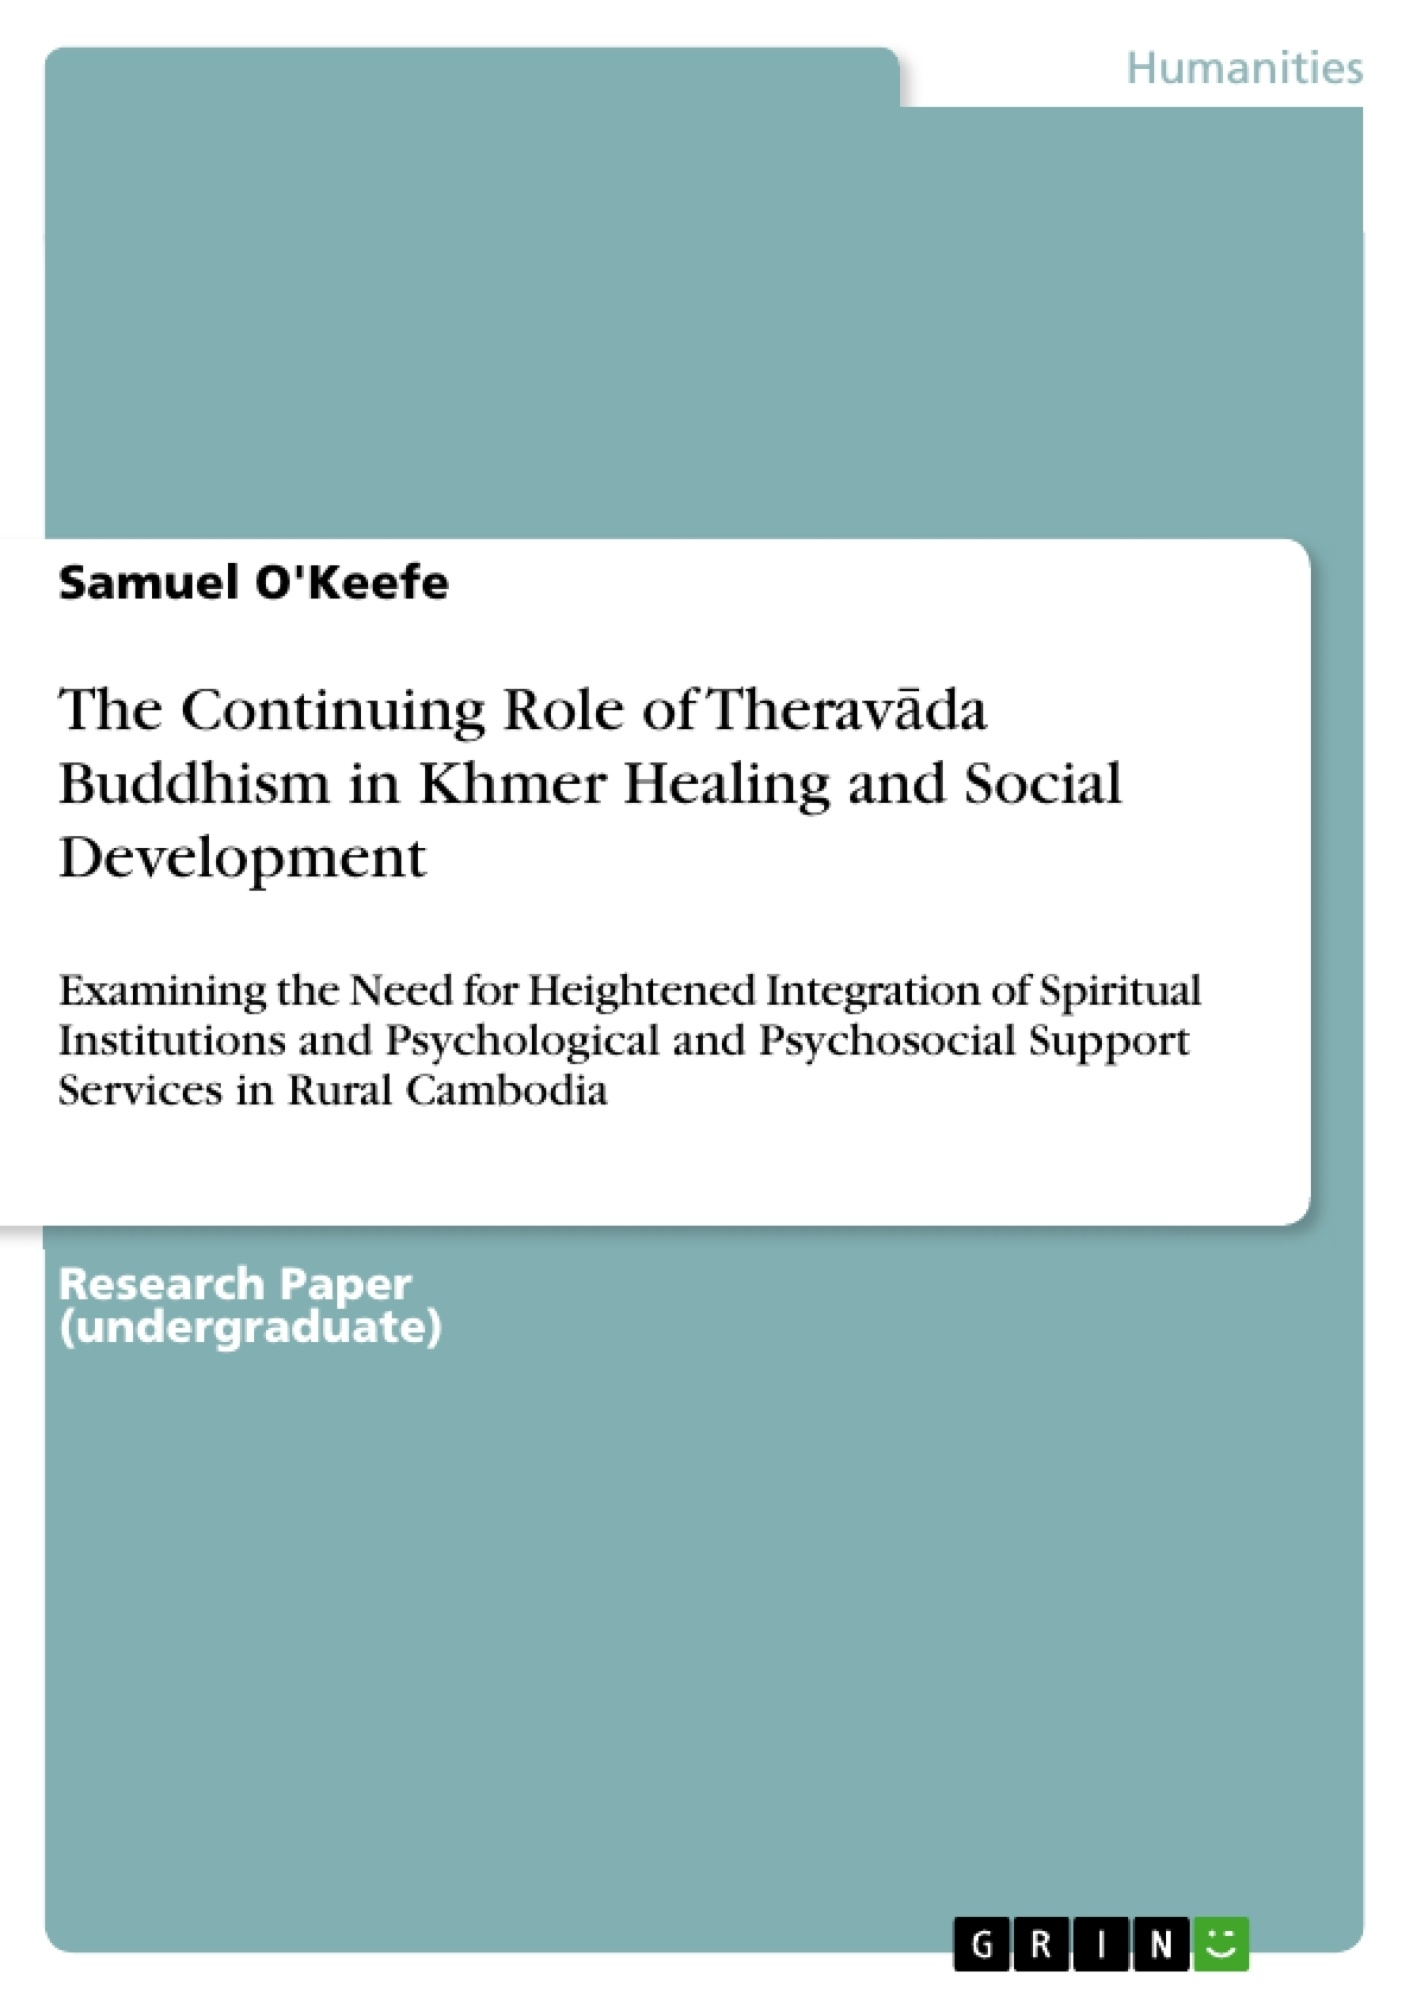 Title: The Continuing Role of Theravāda Buddhism in Khmer Healing and Social Development